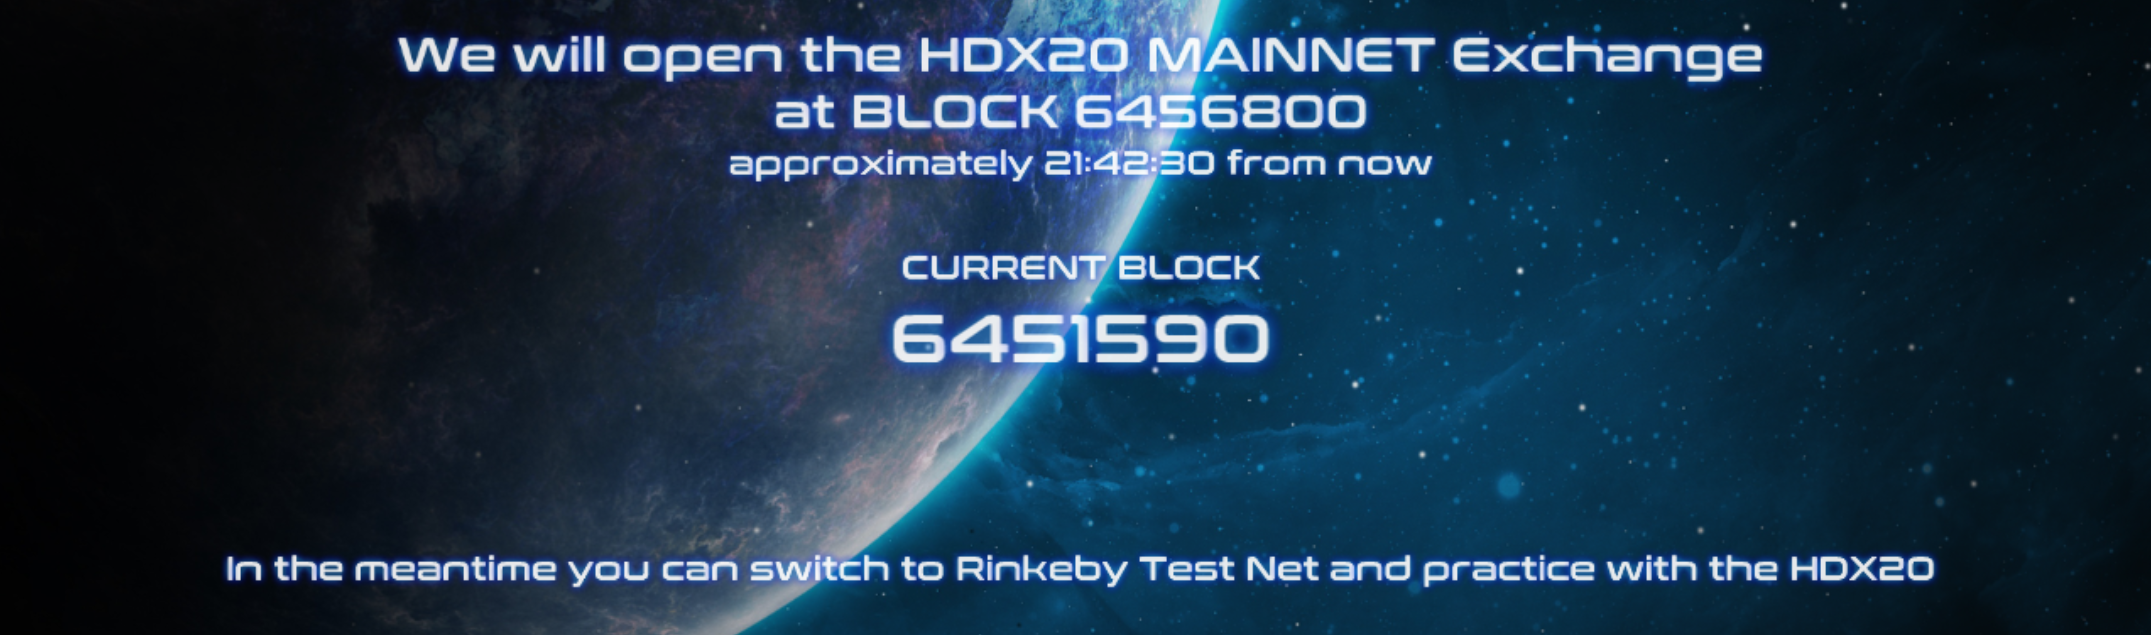 HDX20 Opening at block 6456800